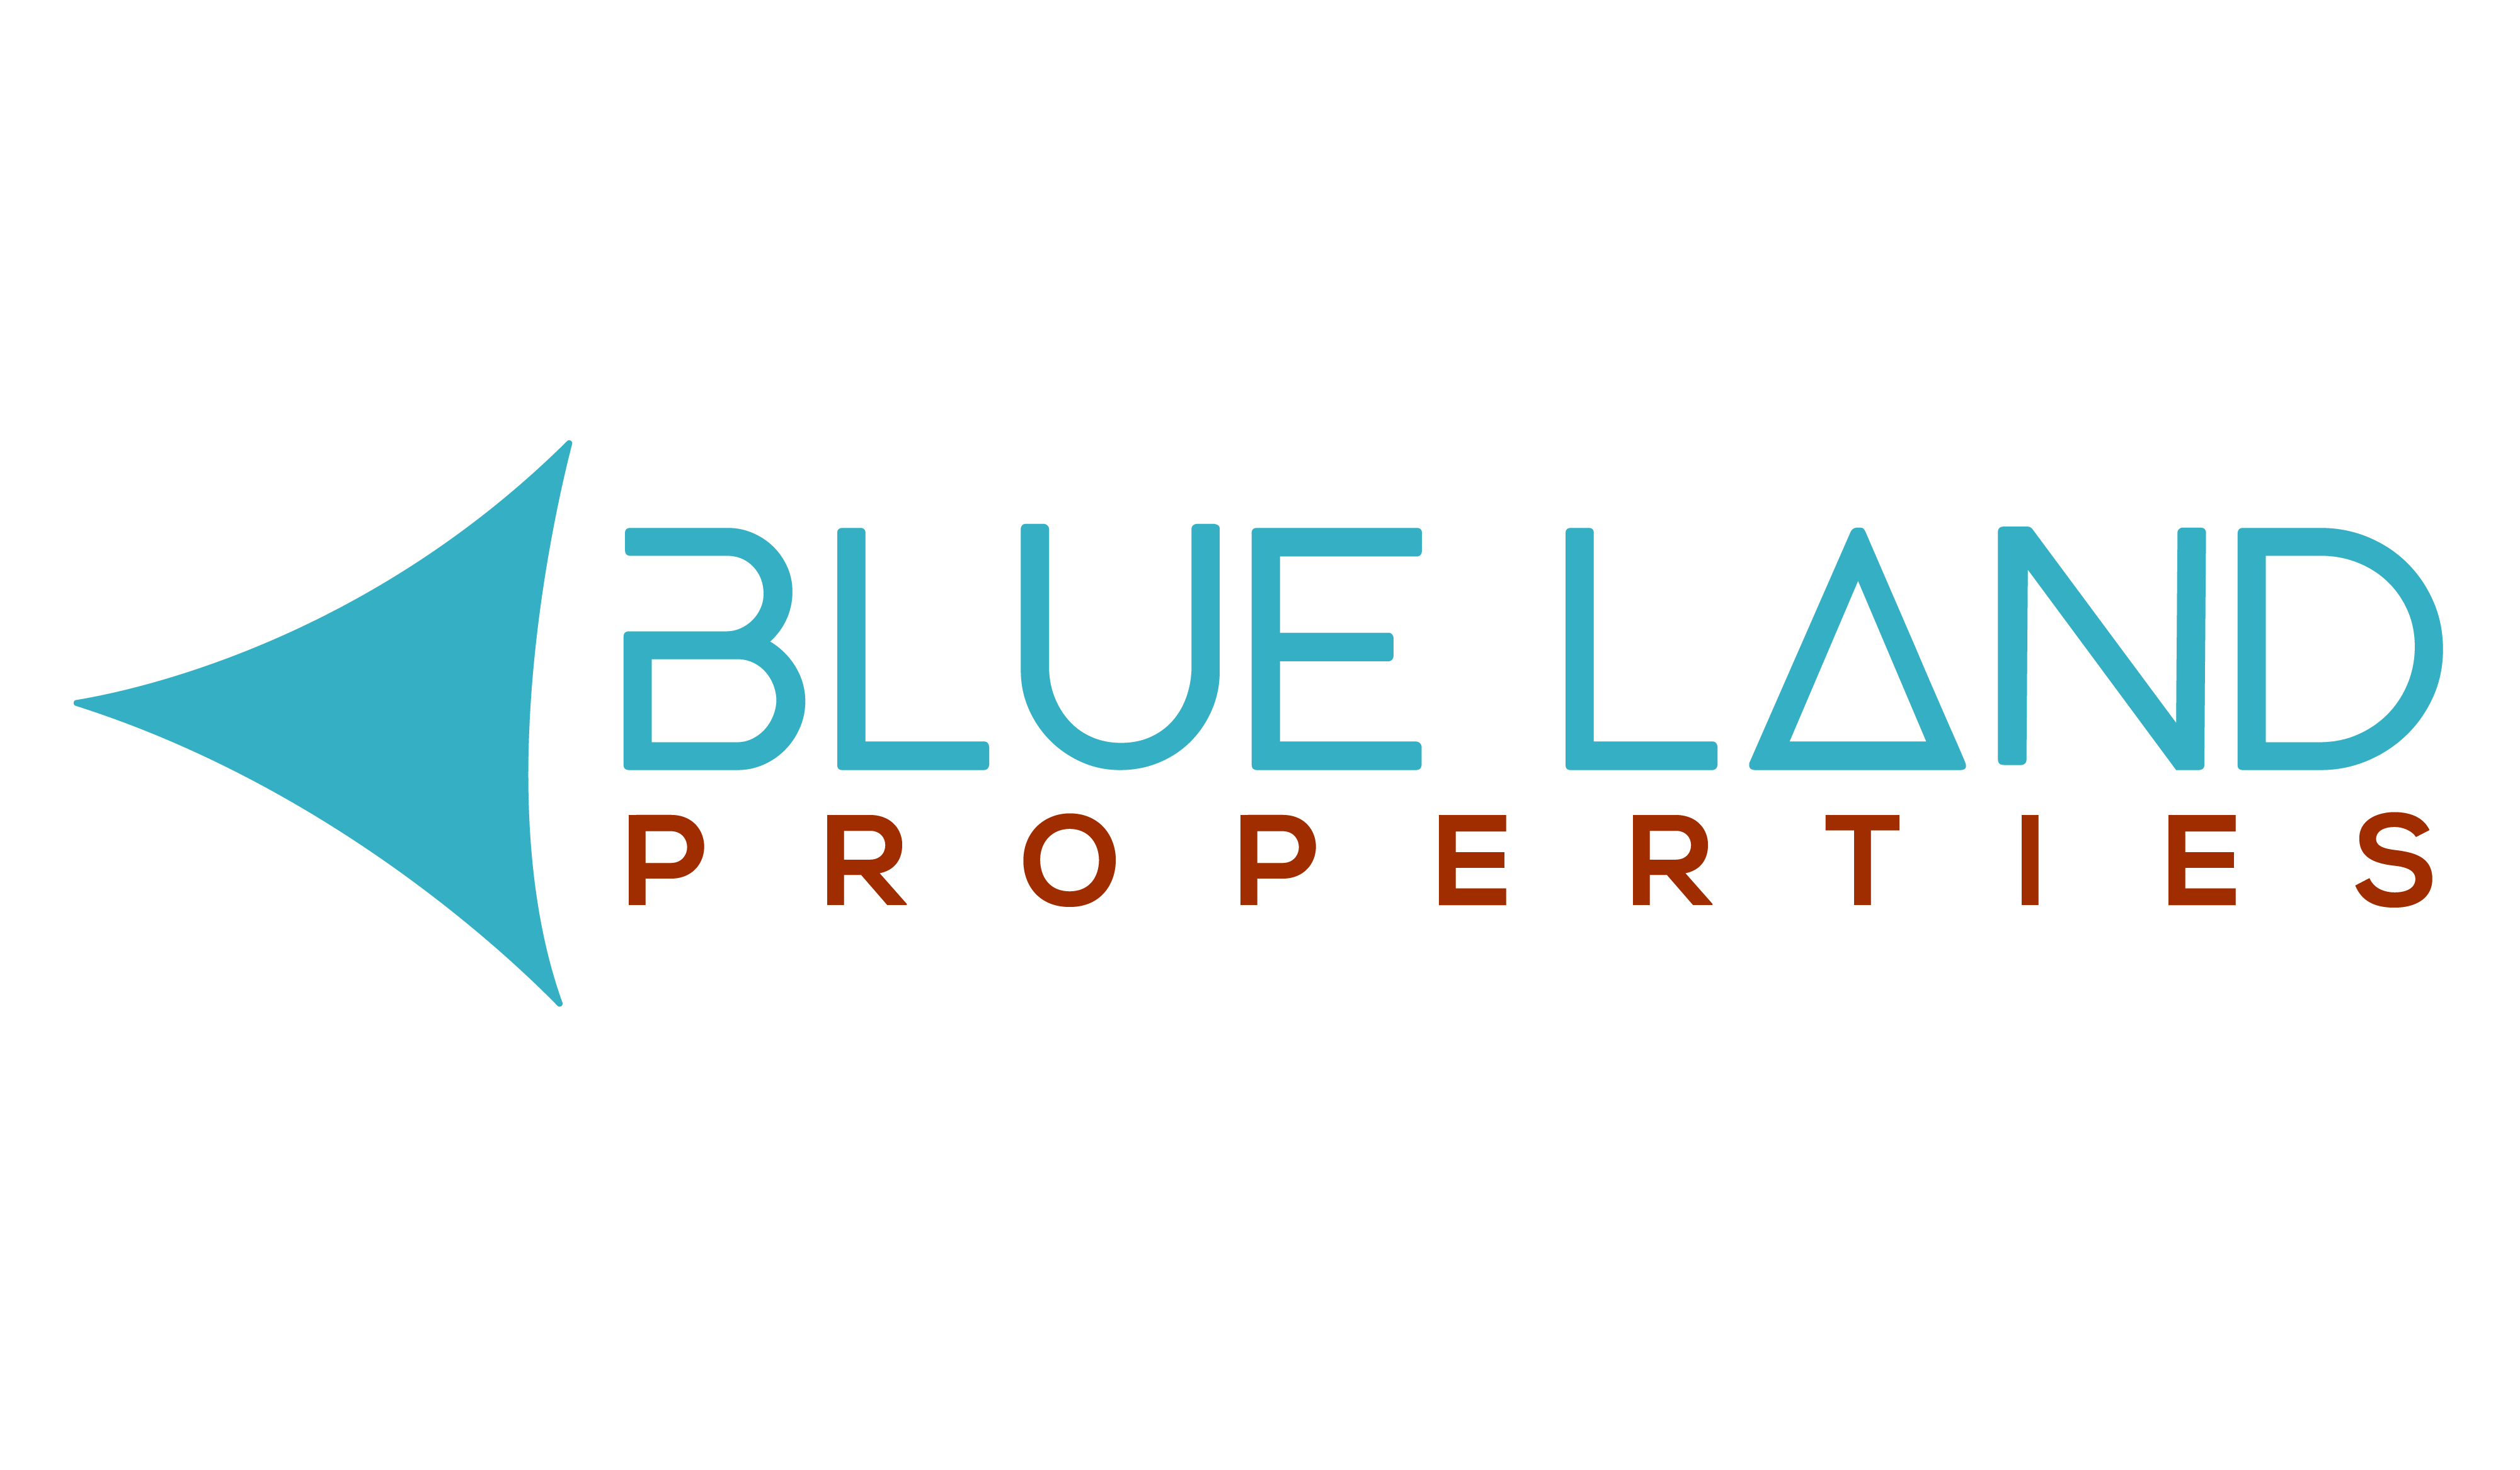 Blue_Land_Properties_new_1-01-7.png